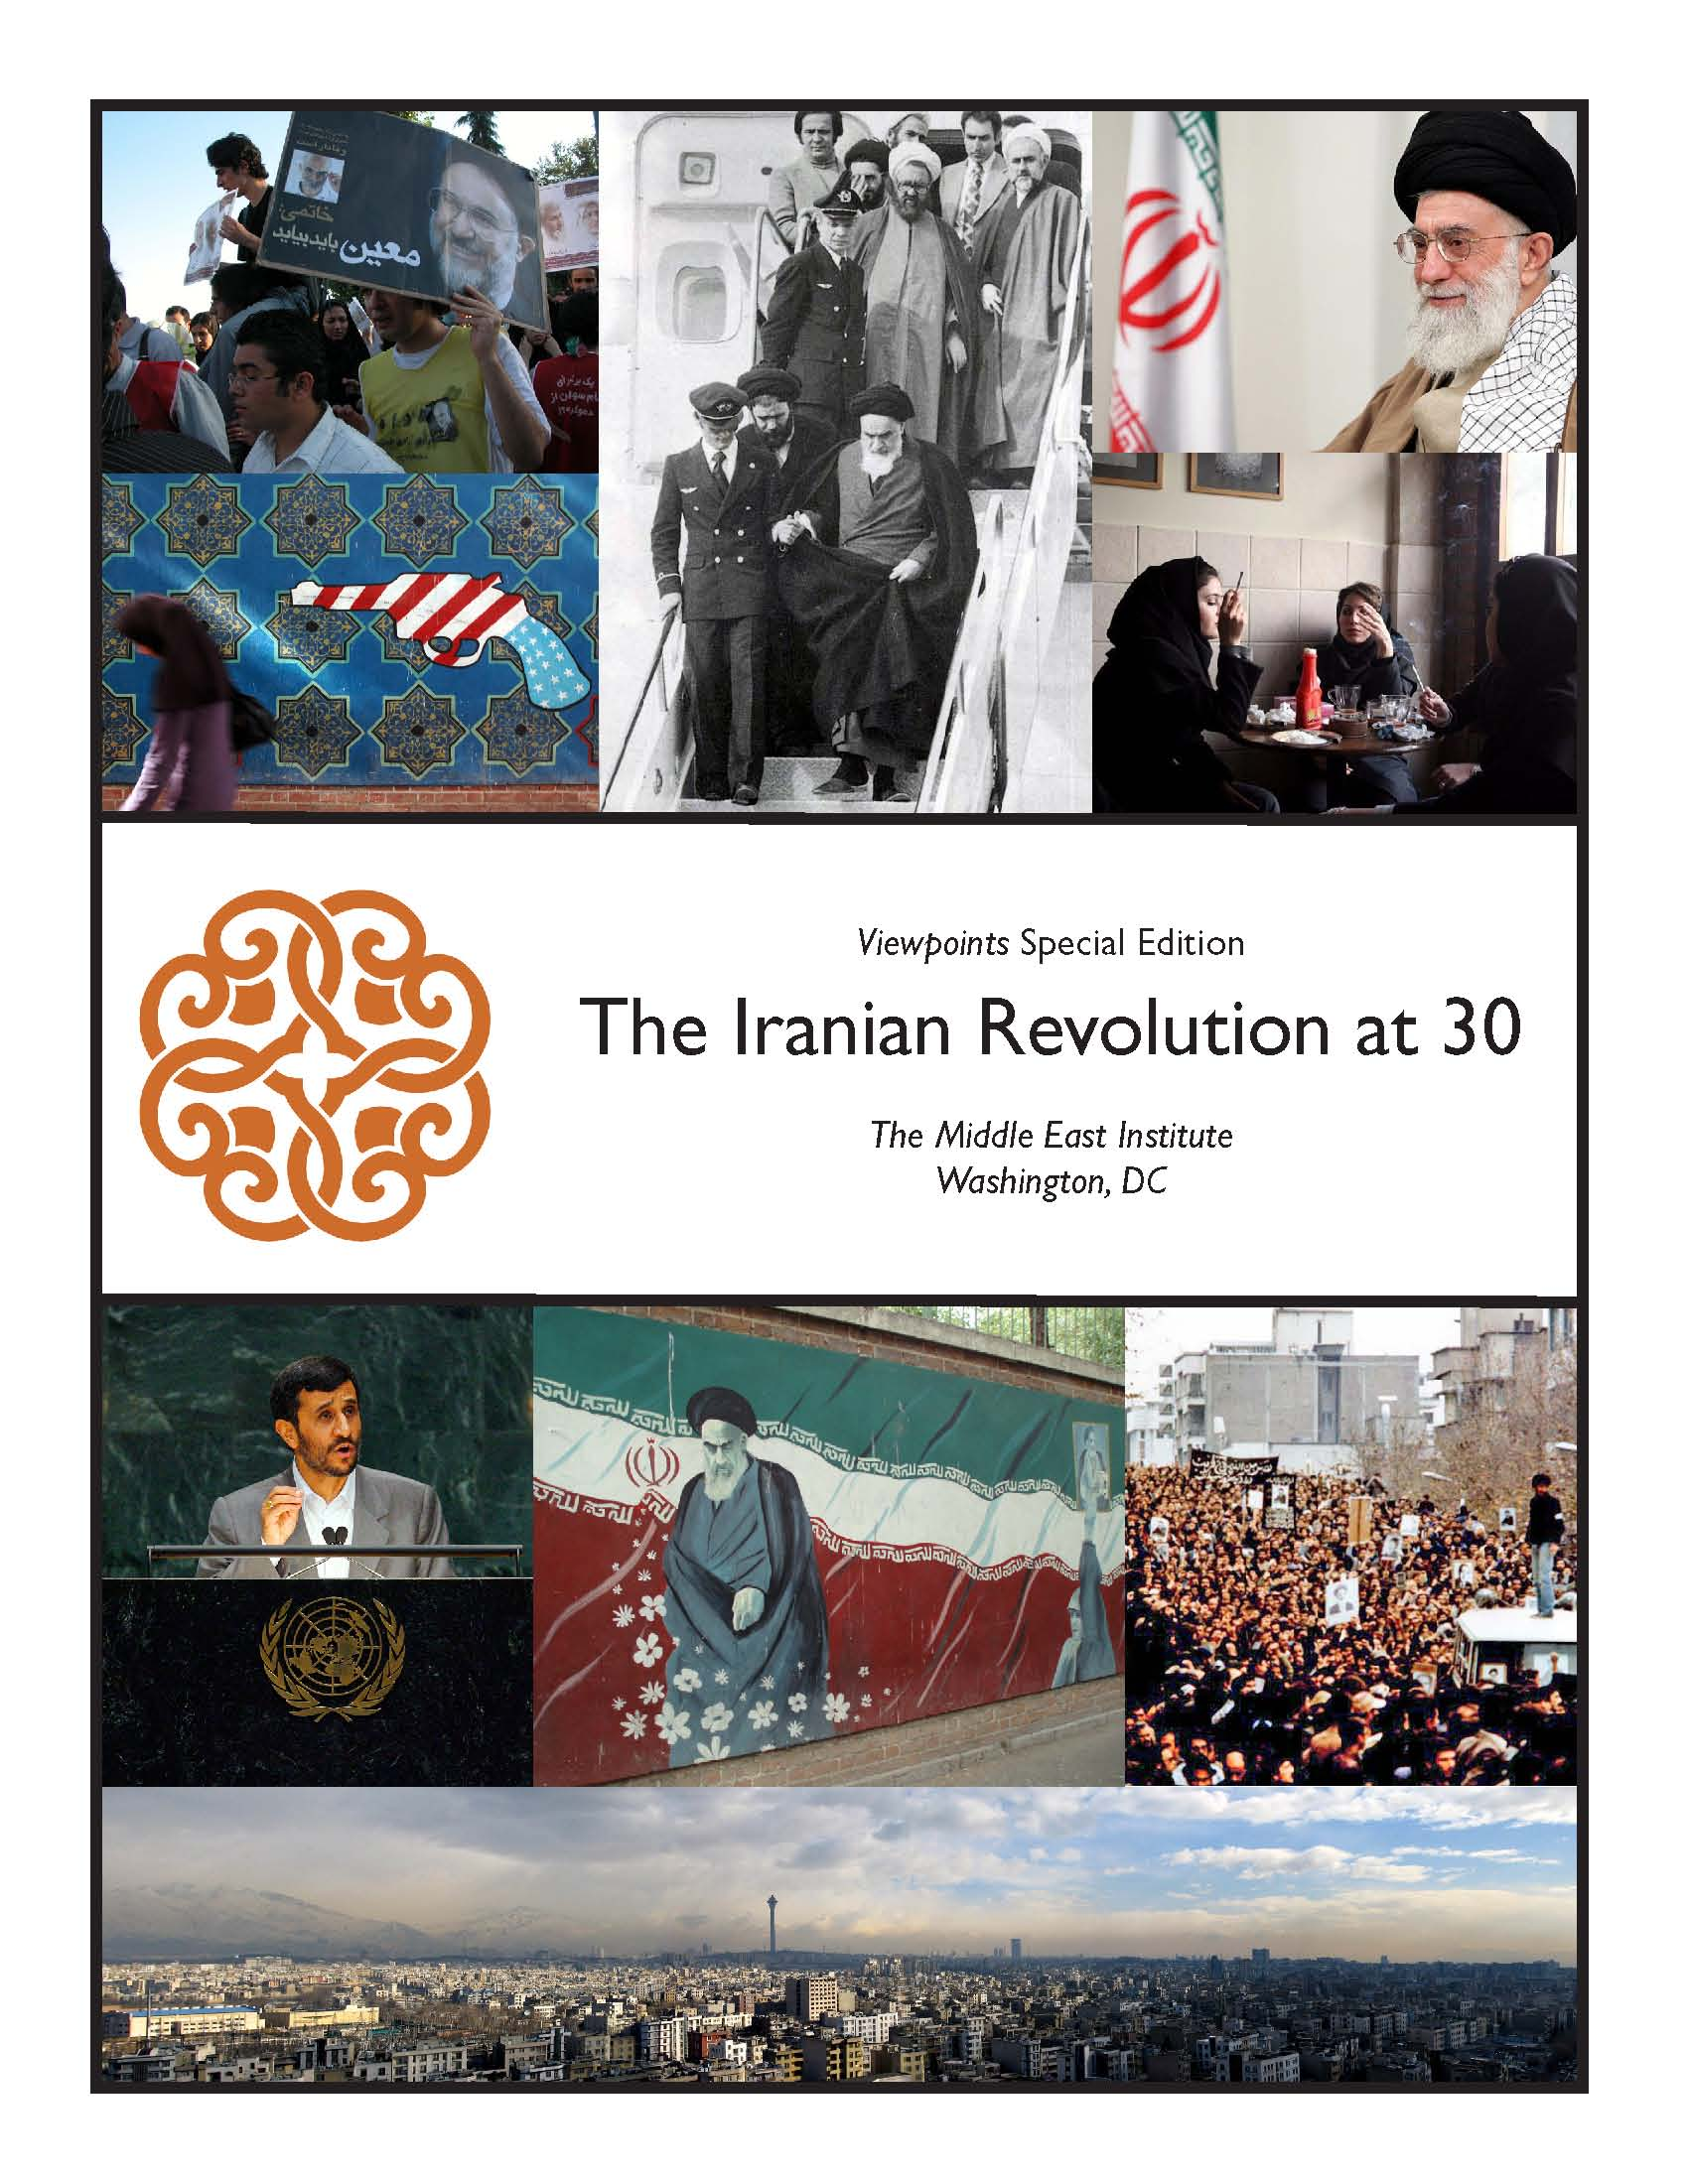 an analysis of iranian revolution A brief history of the iranian revolution iran today everyone who took part in the iranian revolution remembers the events ja'far najafian.